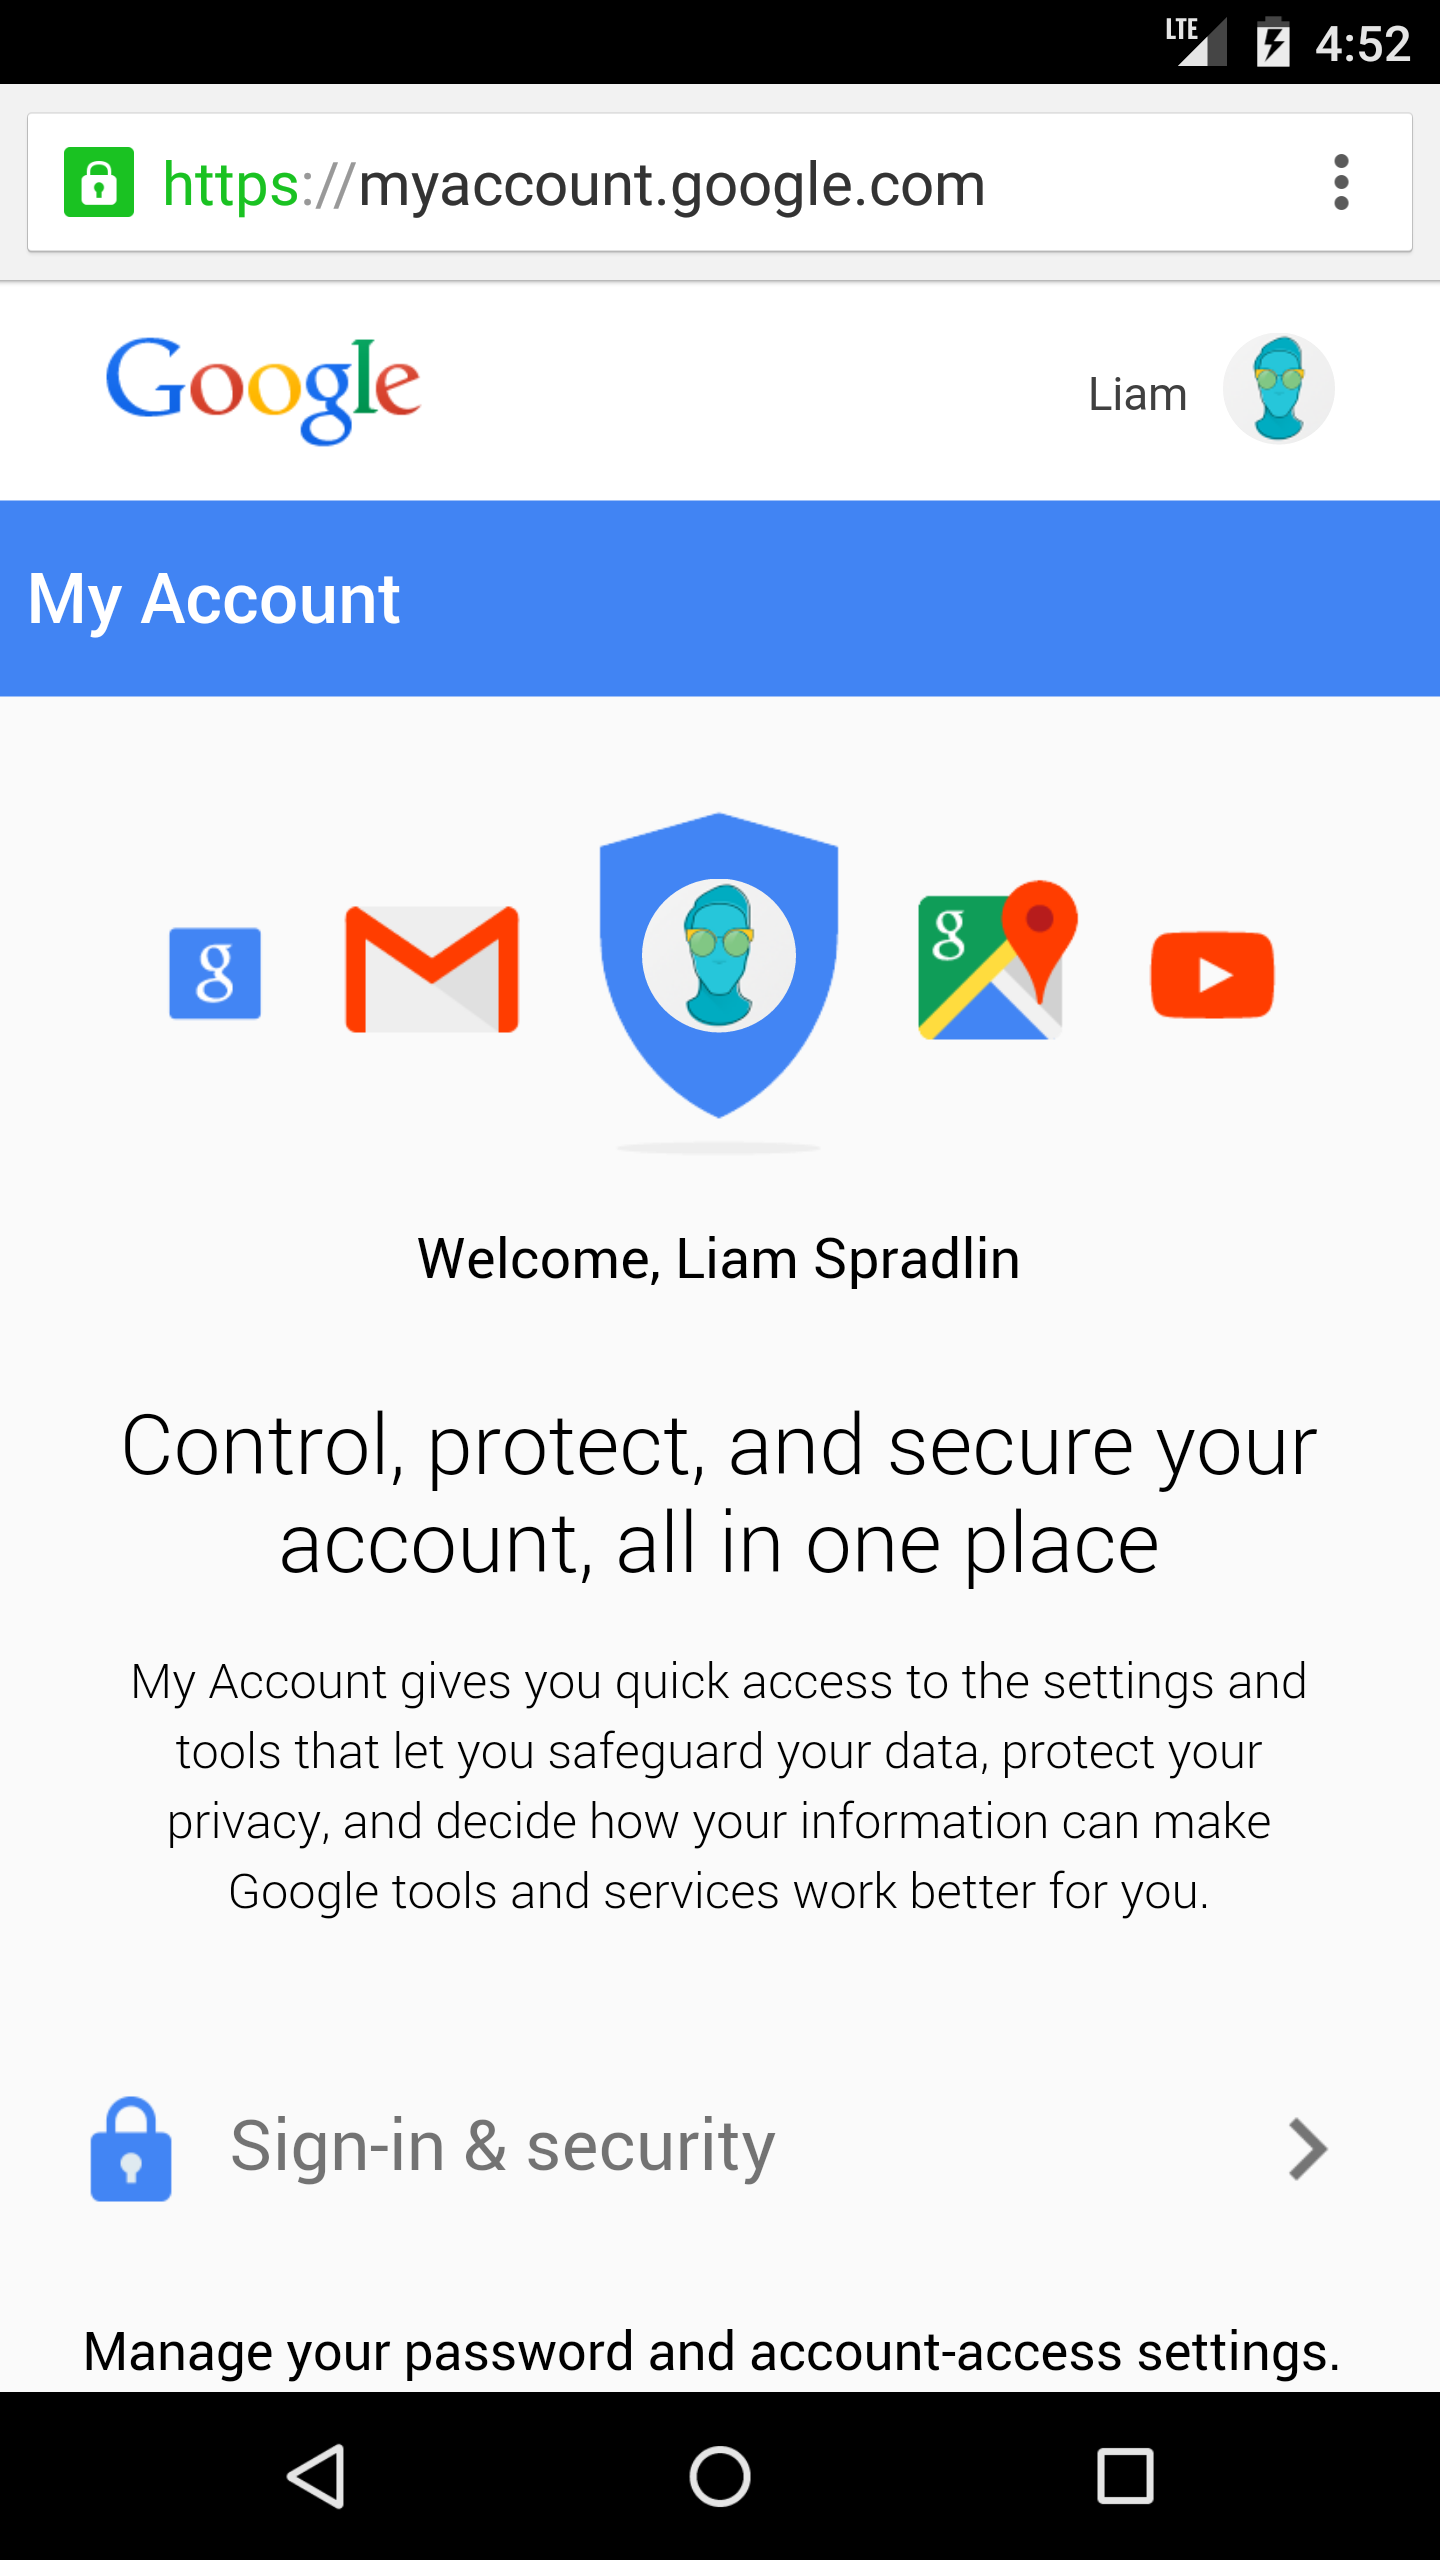 Google's New 'My Account' Interface Makes Checking And